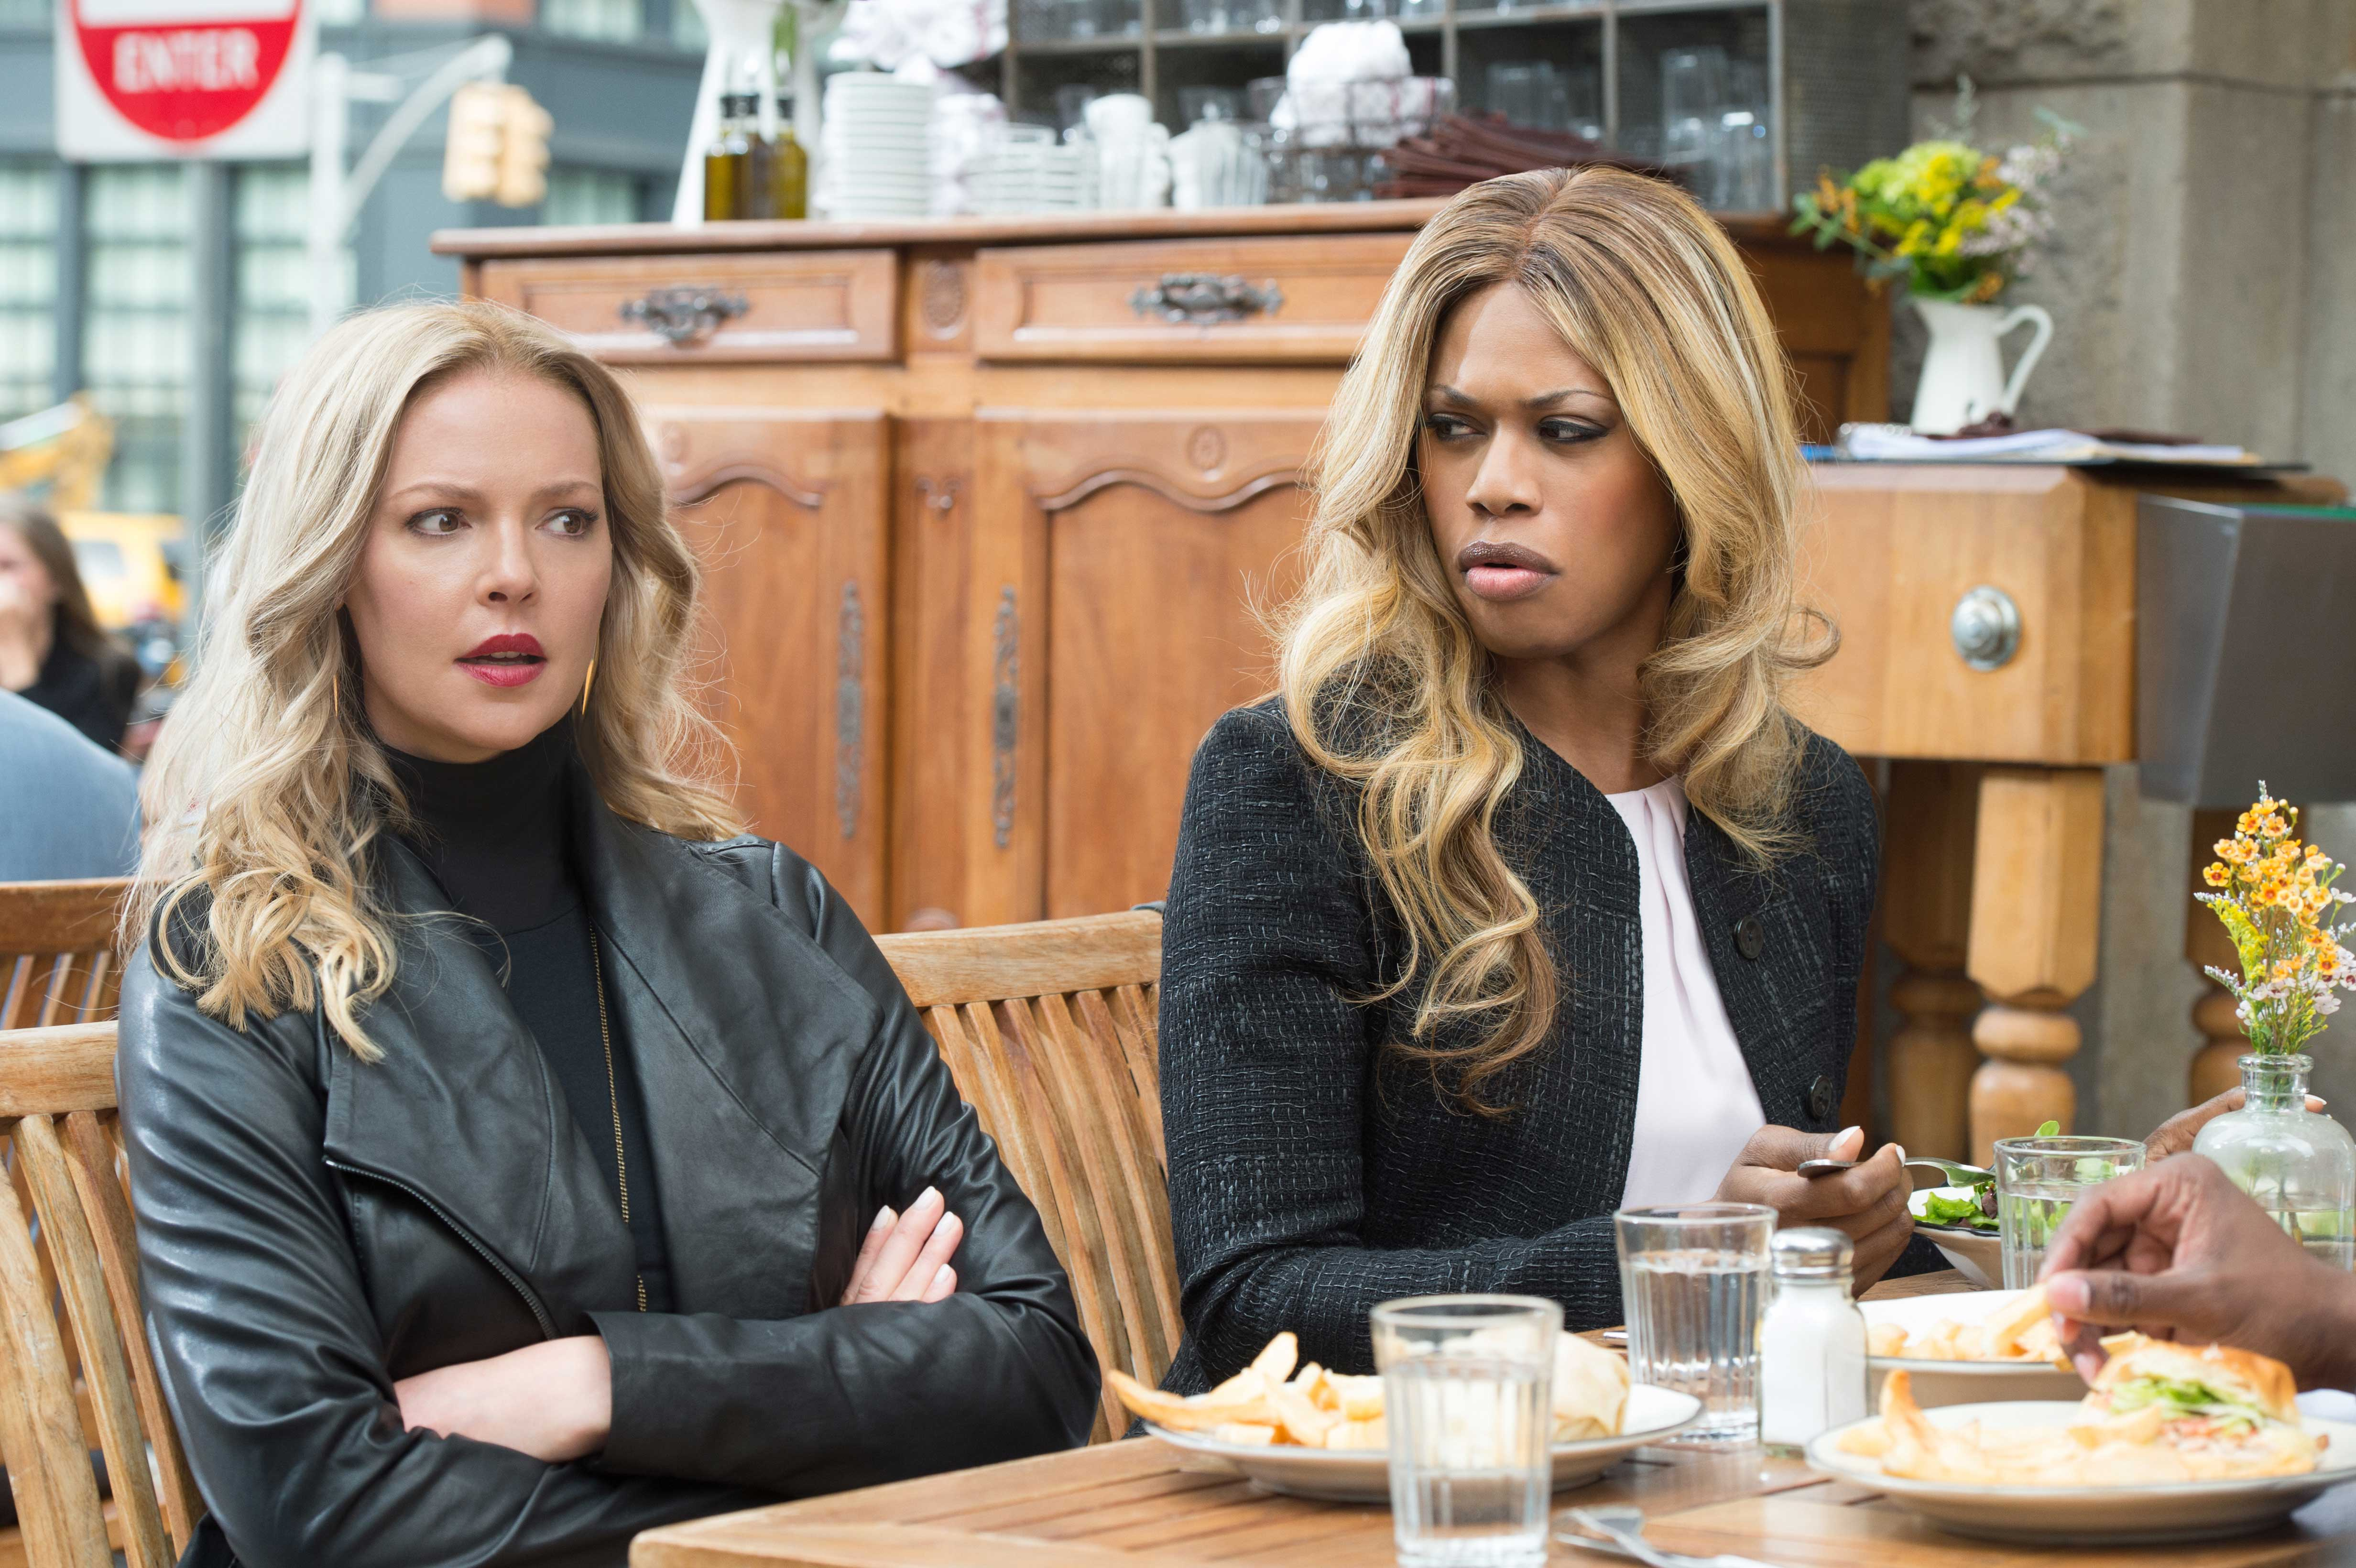 Katherine Heigl and Laverne Cox in Doubt